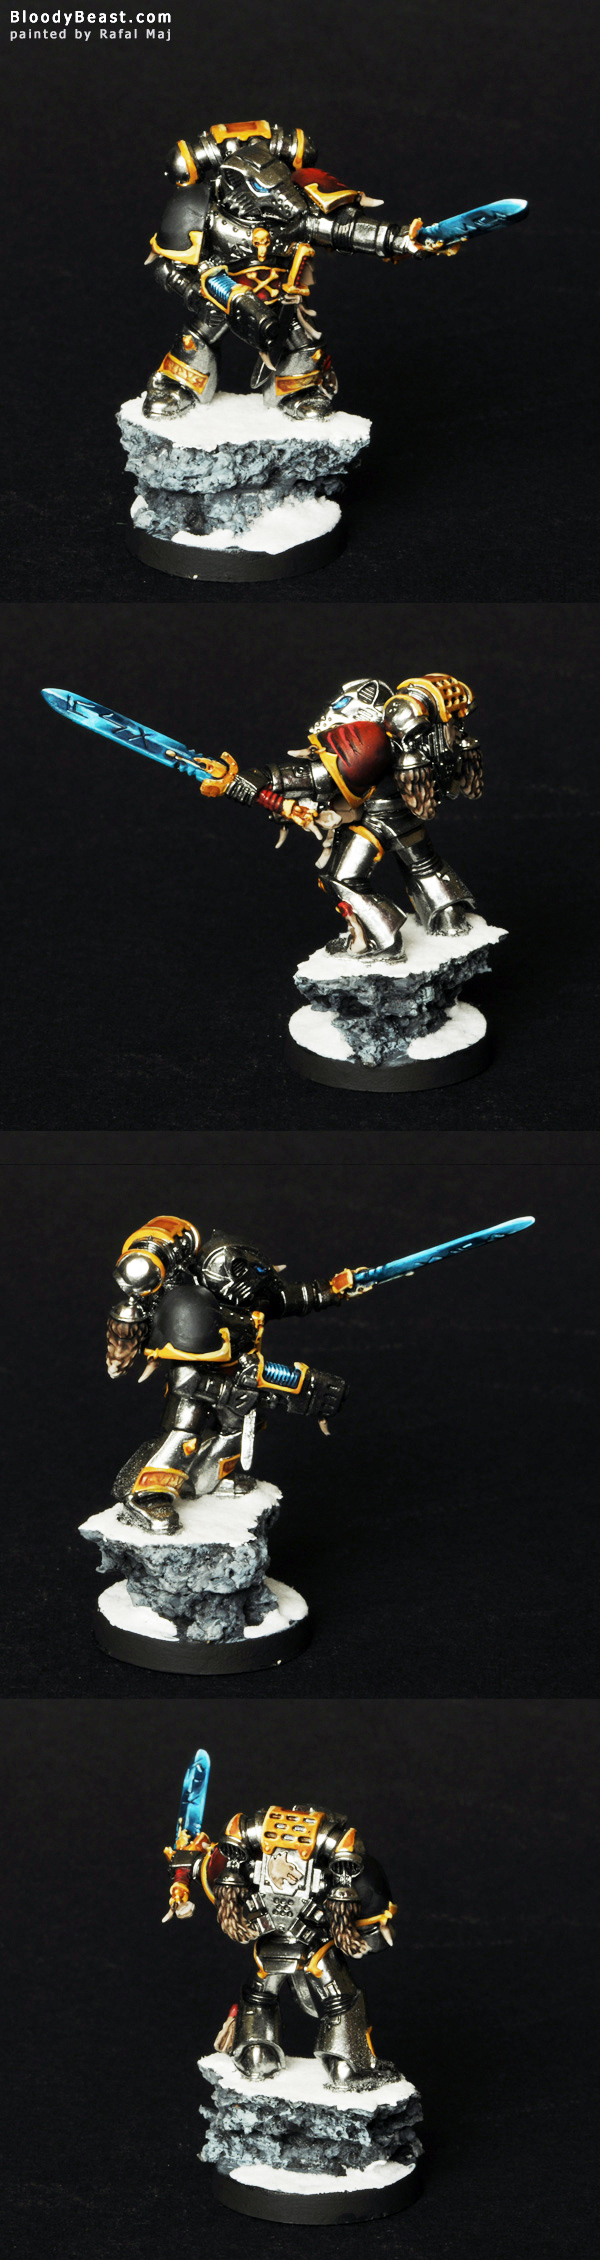 Space Wolf Lone Wolf with Chrome Metallic Armor painted by Rafal Maj (BloodyBeast.com)